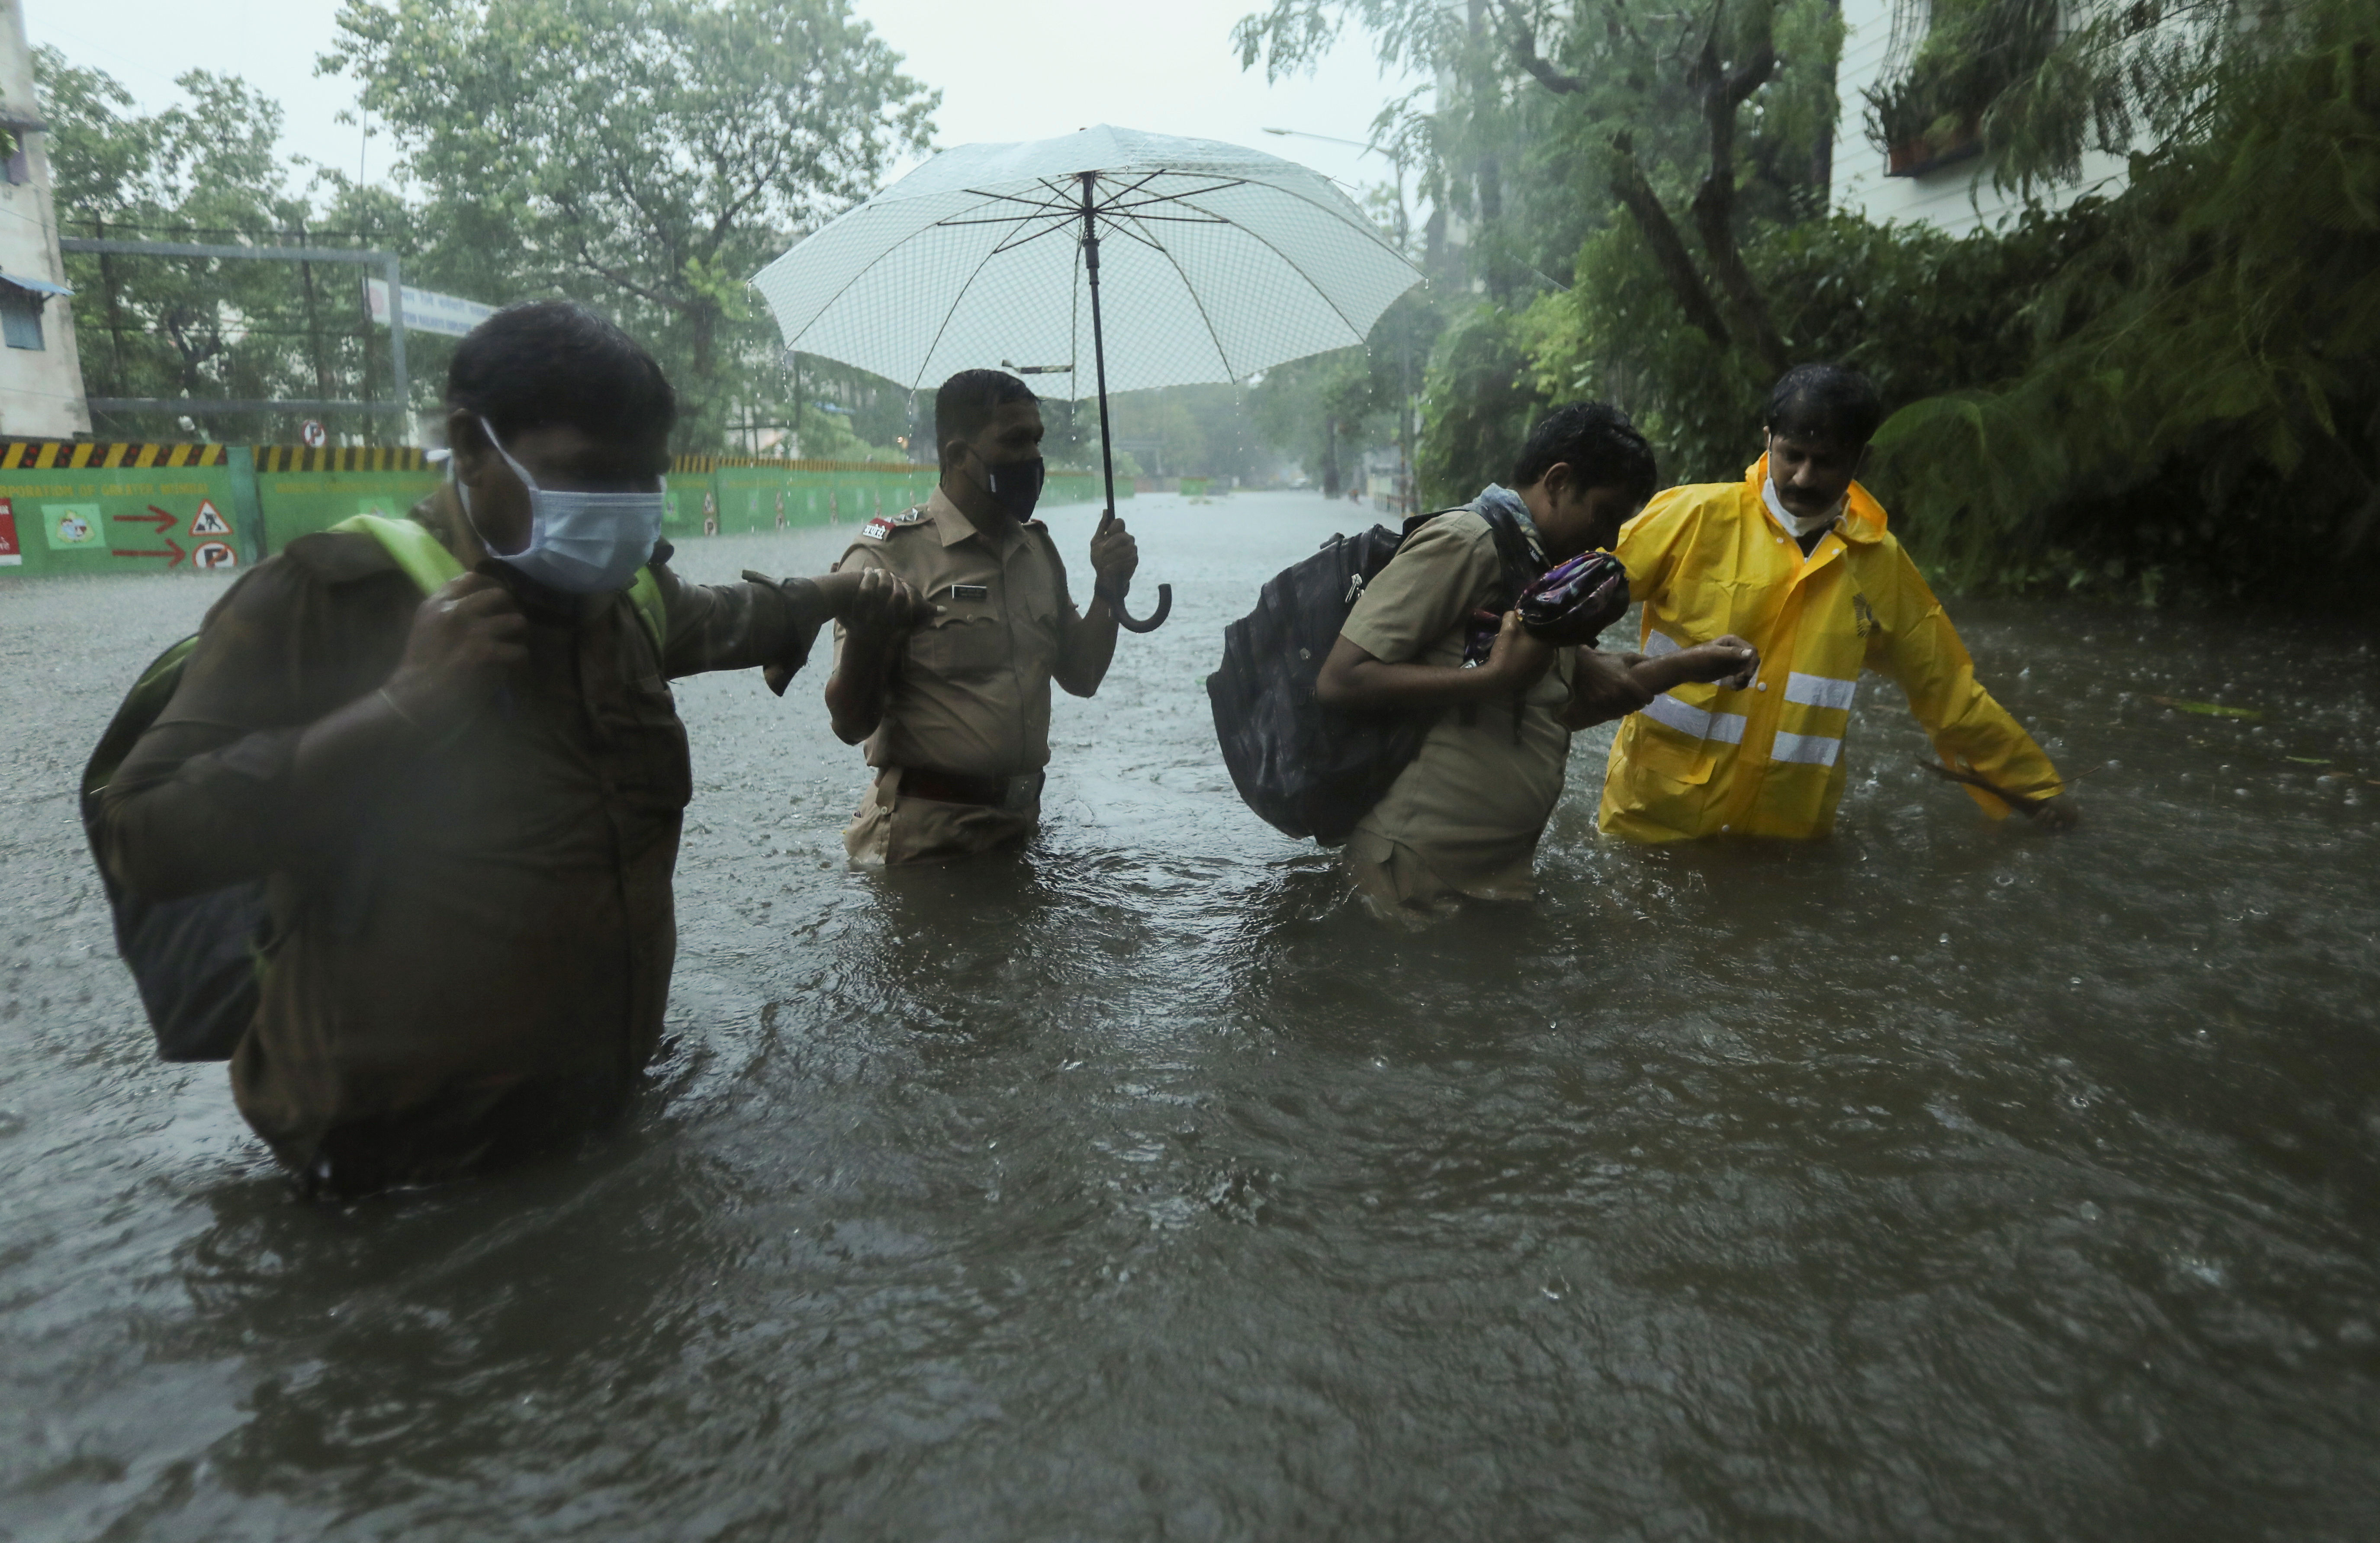 Frontline workers help people cross a flooded street after heavy rainfall caused by Cyclone Tauktae in Mumbai, India, May 17, 2021. REUTERS/Francis Mascarenhas